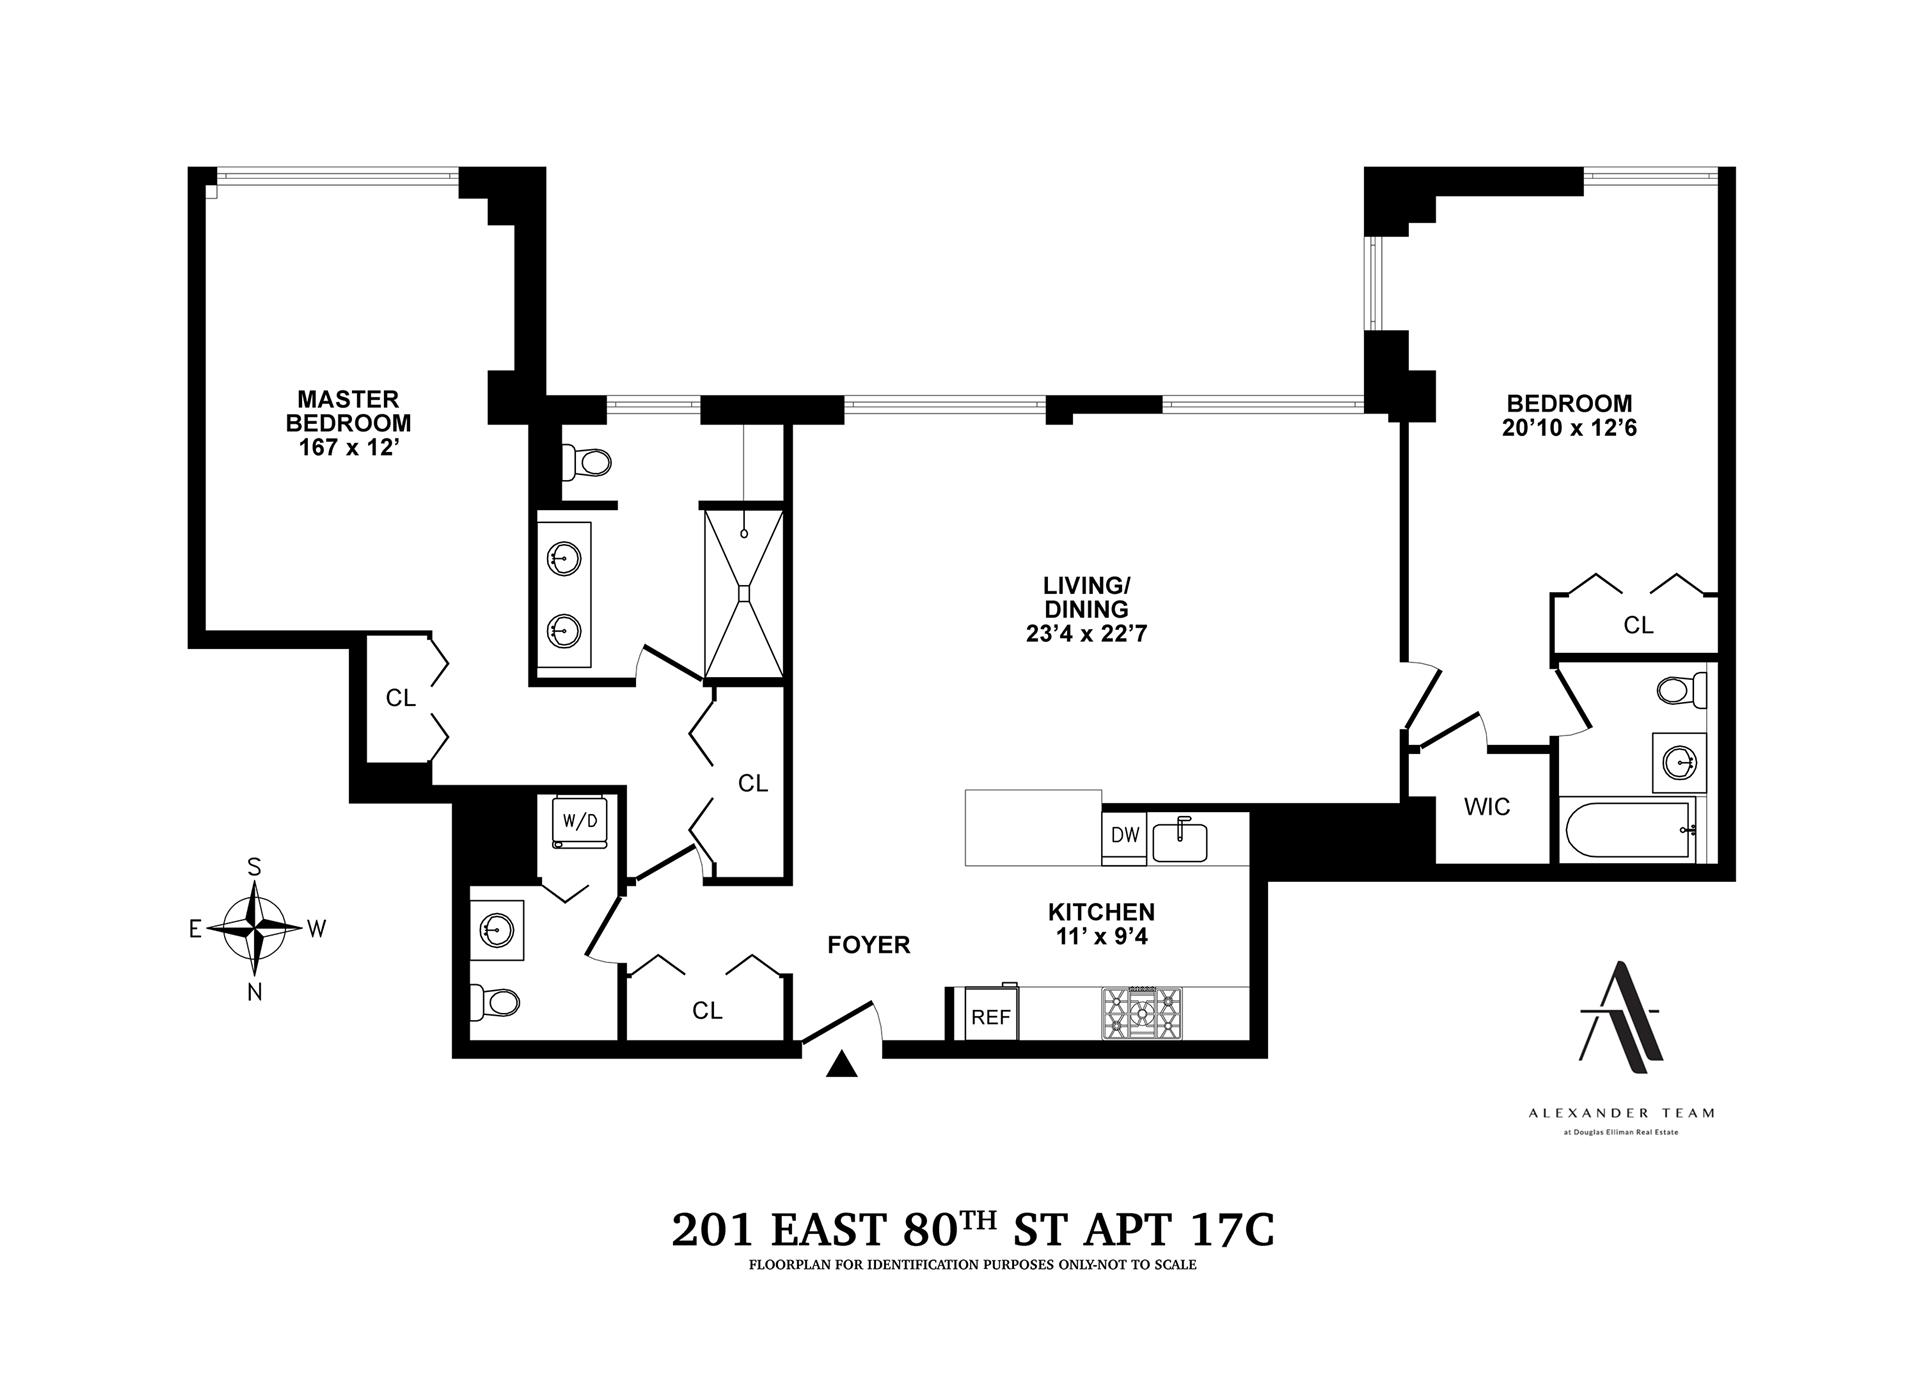 Floor plan of The Richmond, 201 East 80th St, 17C - Upper East Side, New York